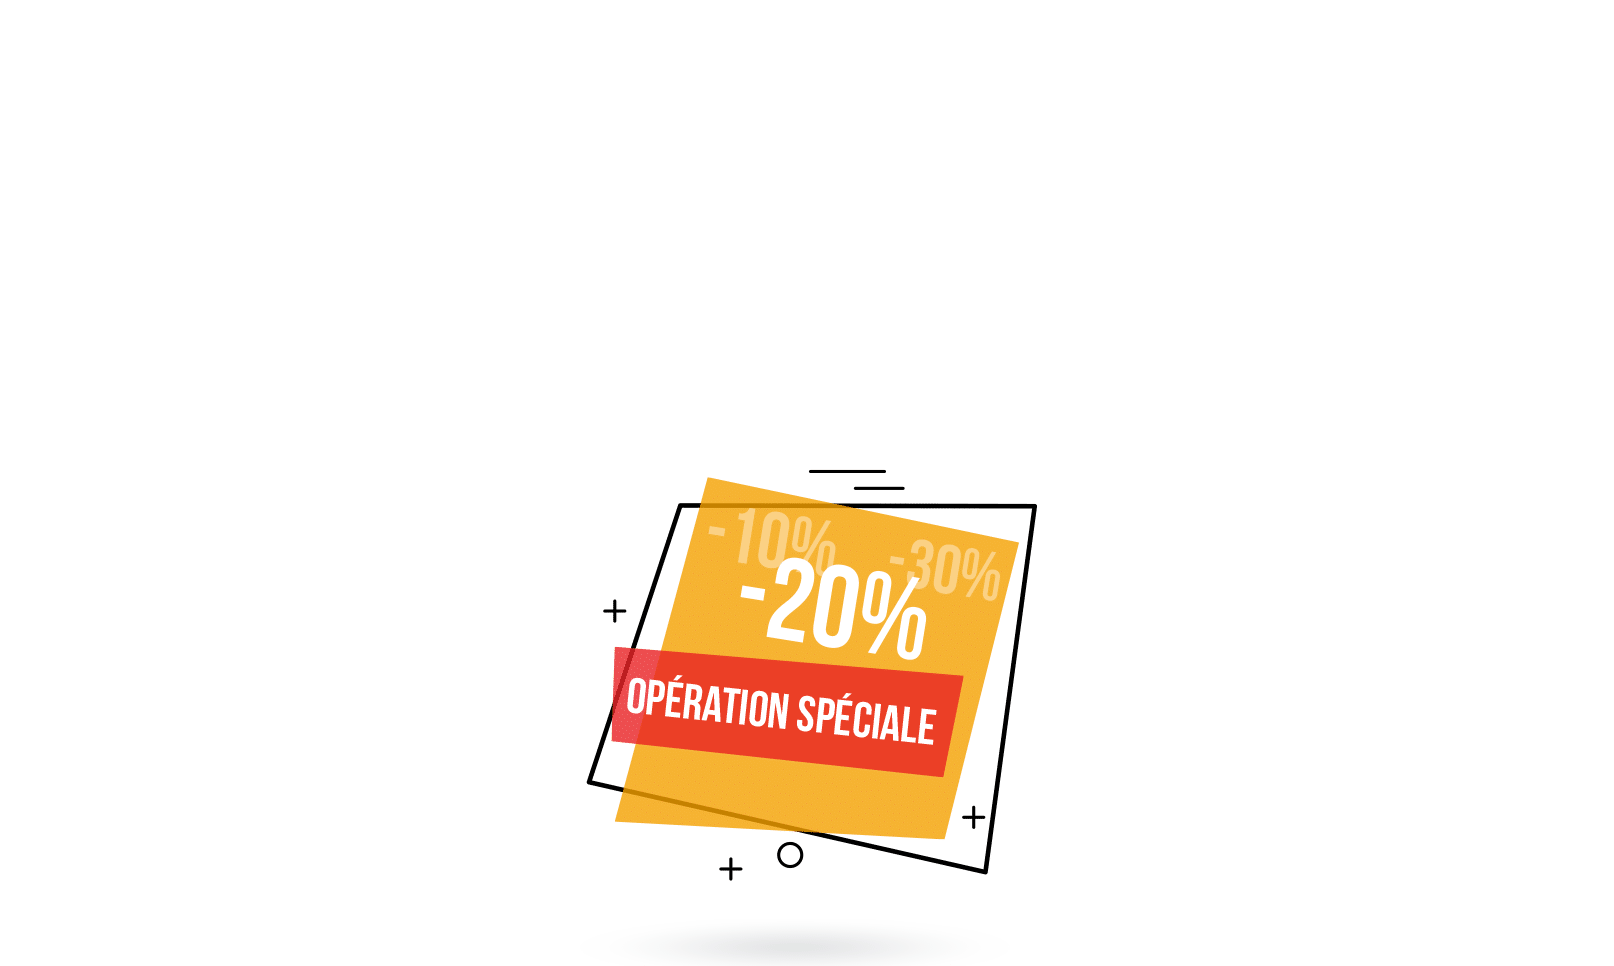 opérationspeciale